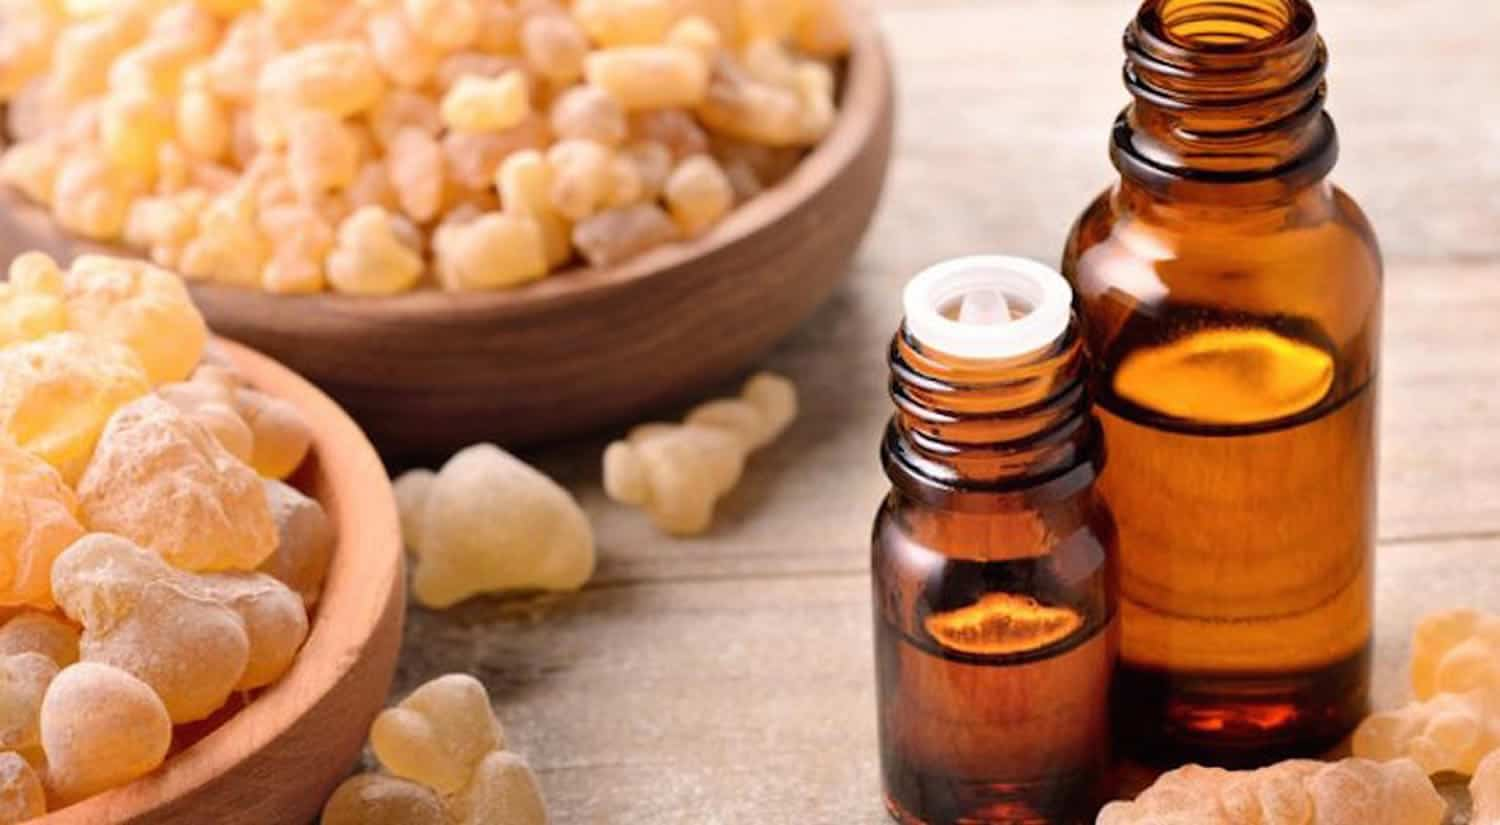 Frankincense Oil Kills Cancer Cells Reduces Radiation